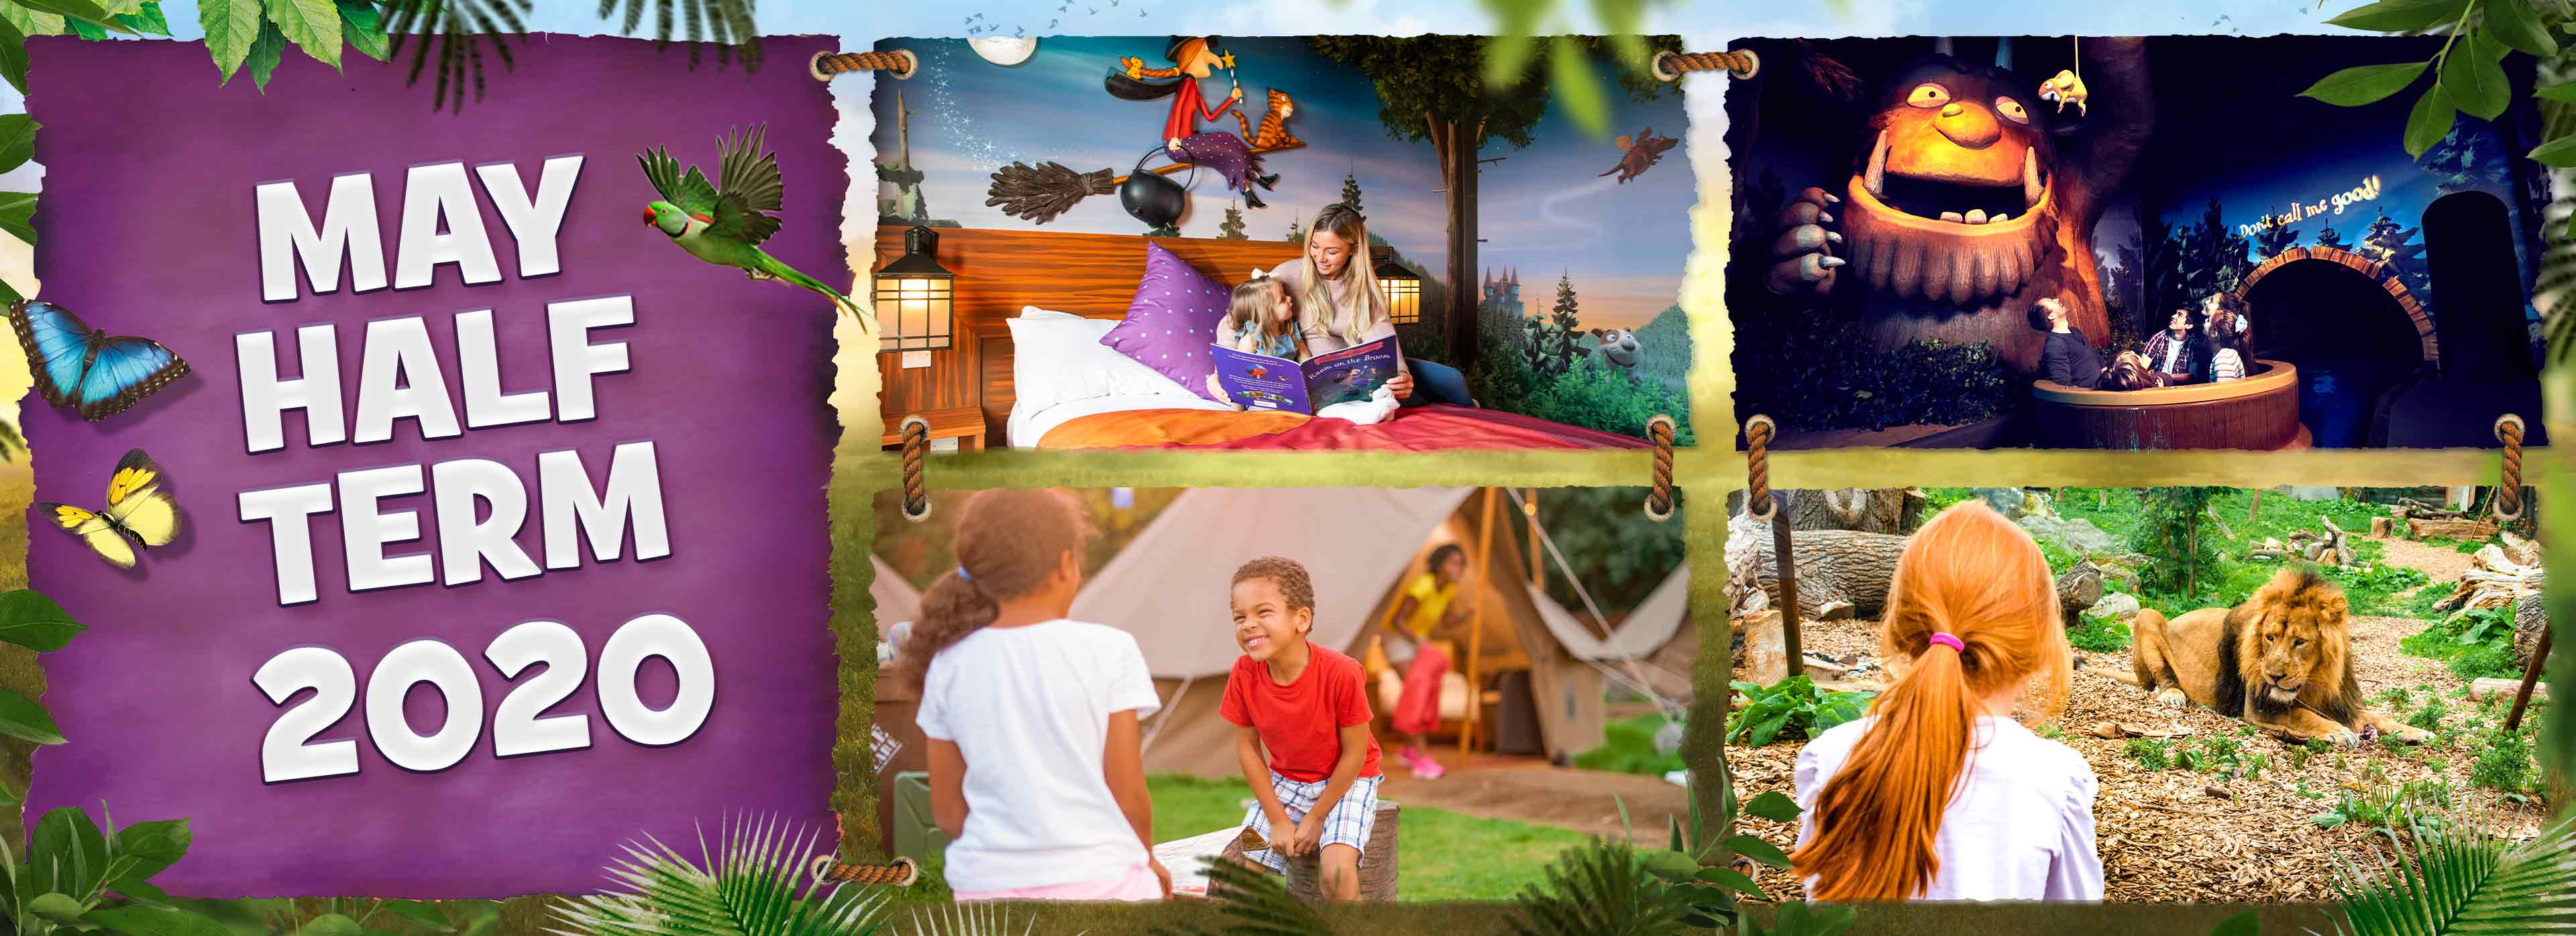 May Half Term at Chessington World of Adventures Resort